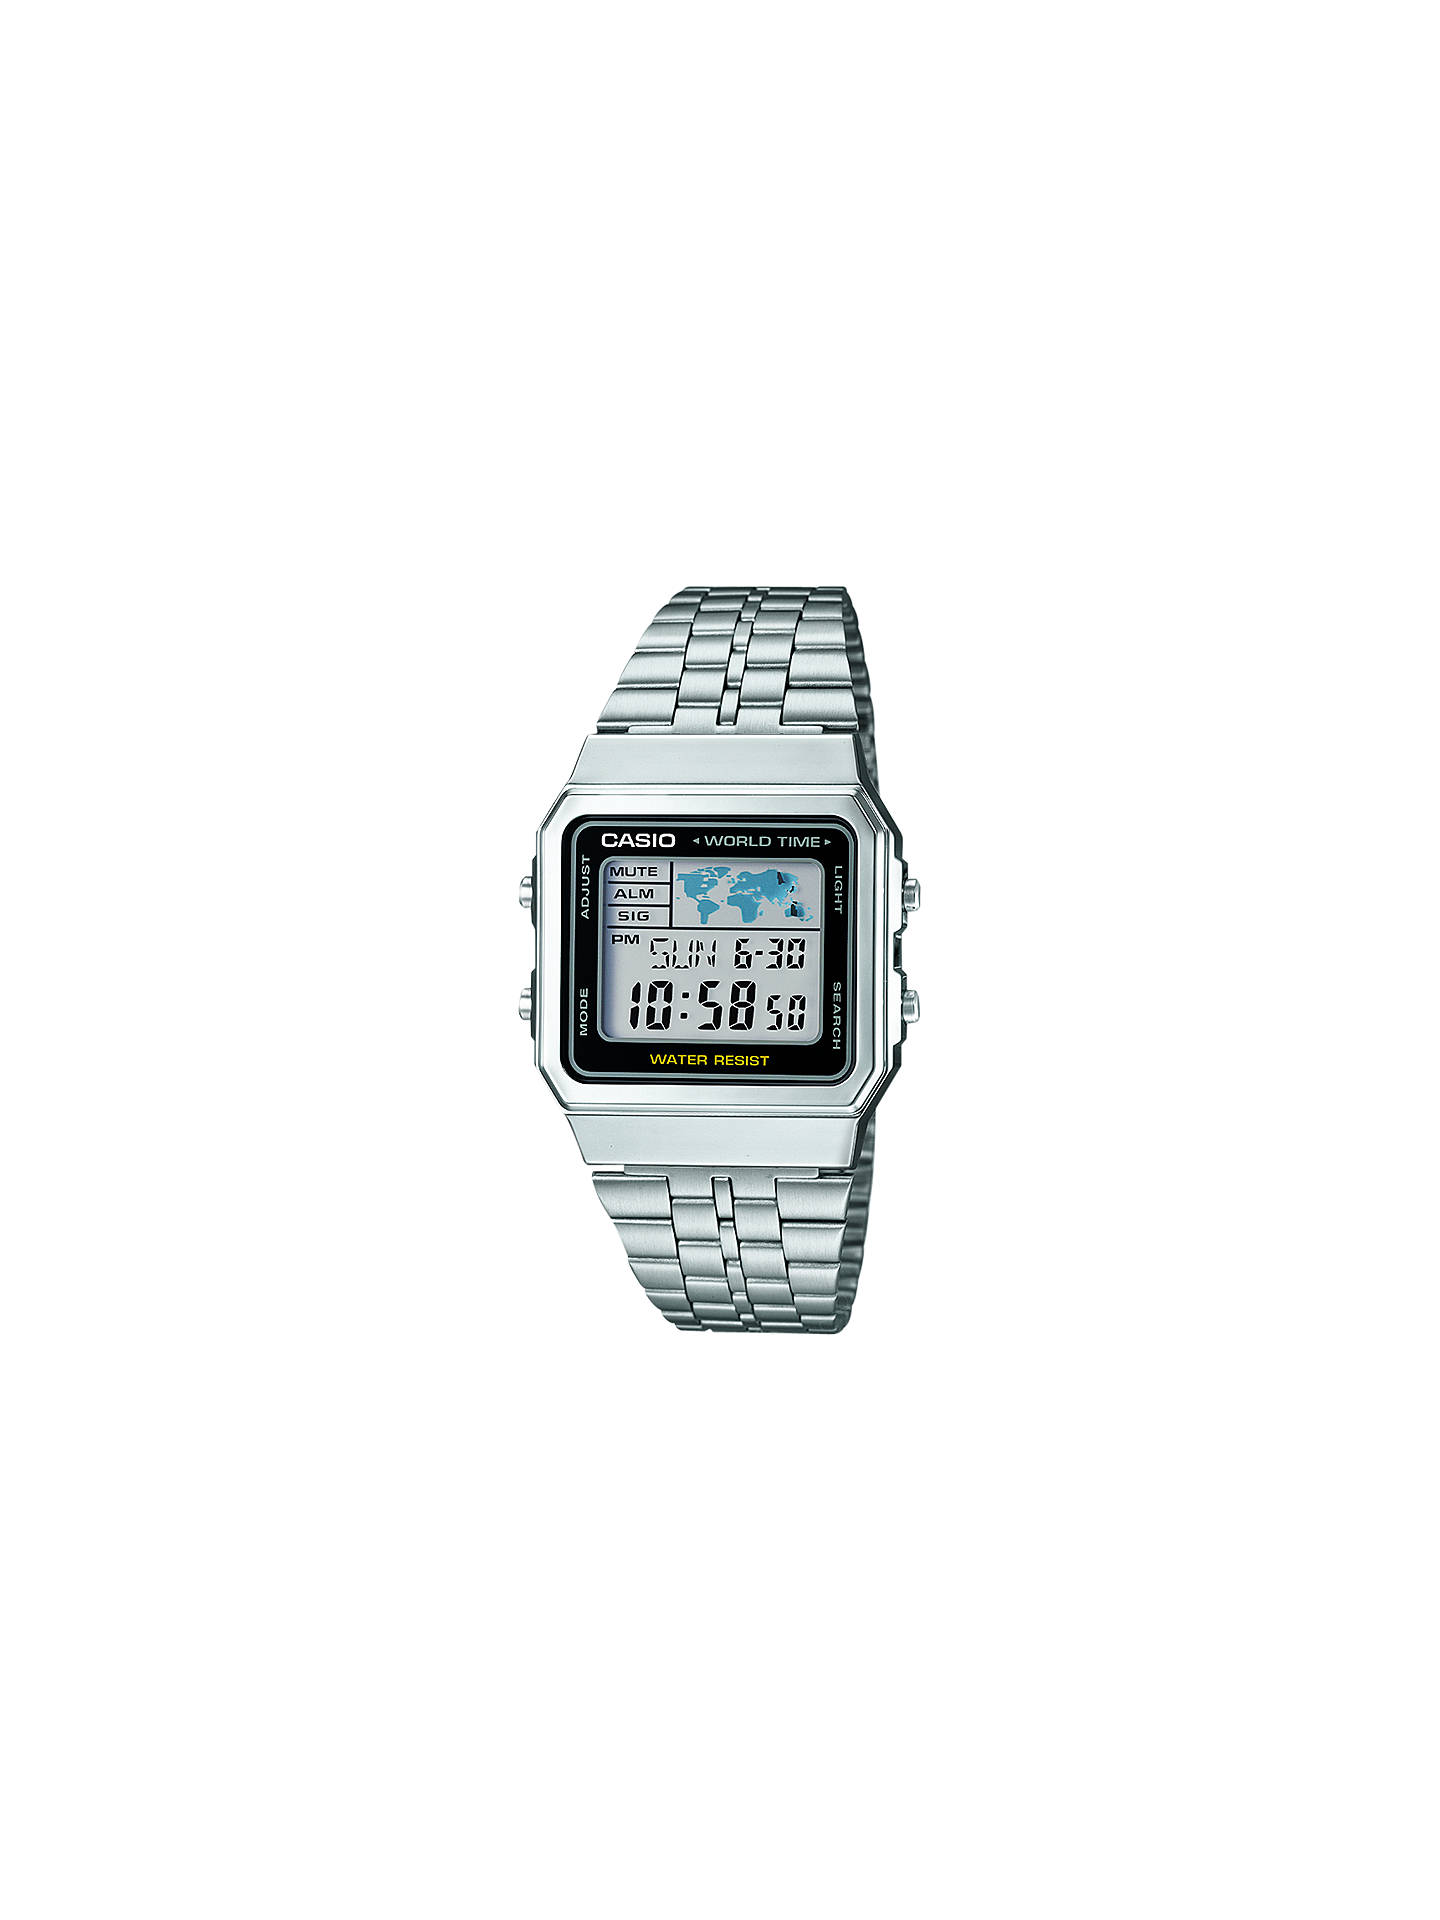 Twitter Instag Casio Mens Digital Gotteamdesigns Edifice Era 100d 1a4 Buycasio A500wea 1ef Stainless Steel Bracelet Strap Watch Silver Online At Johnlewis